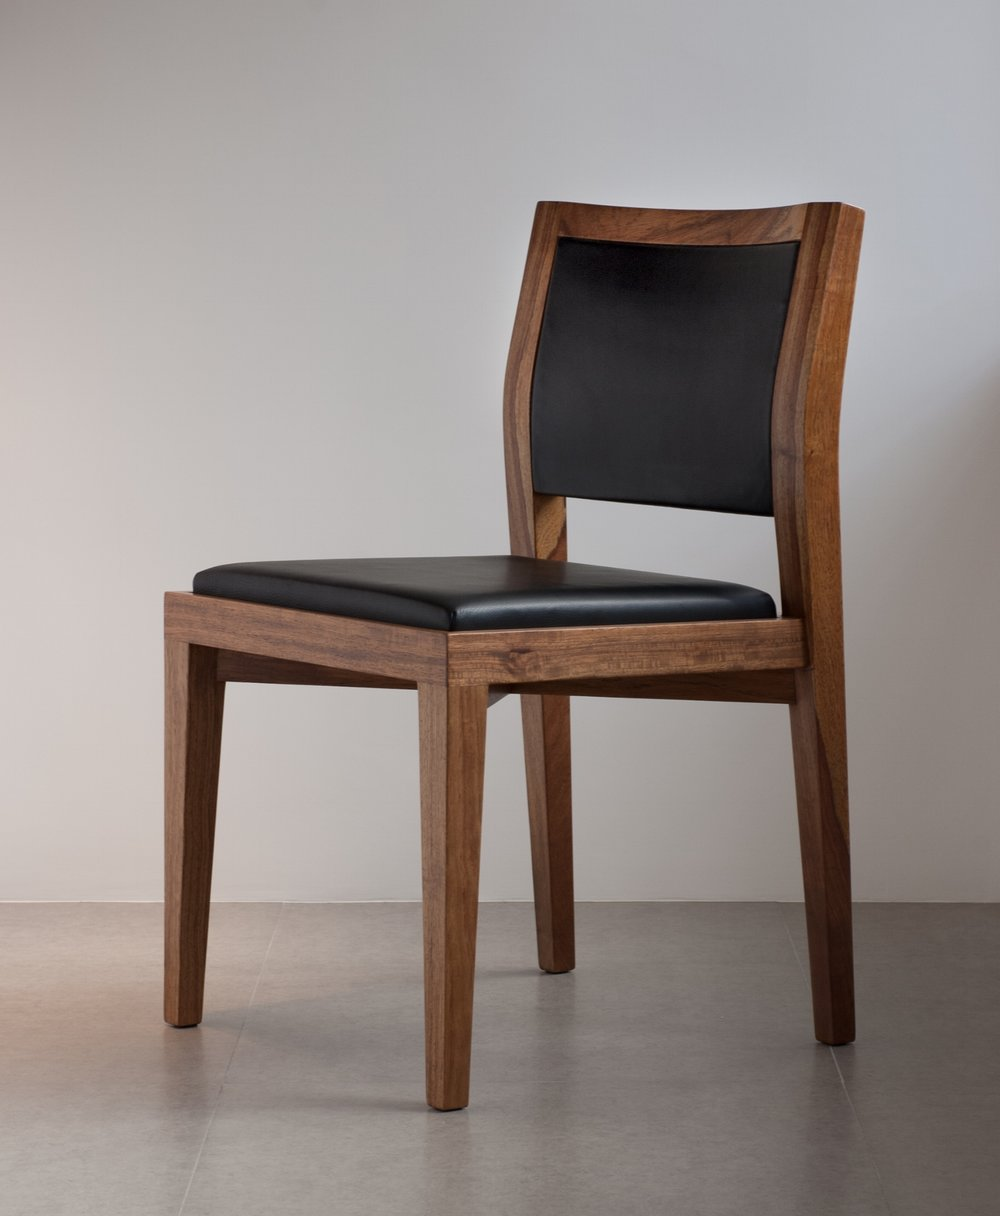 ....Bespoke Modern furniture : Side chair..特别定制现代家具: 靠背椅....